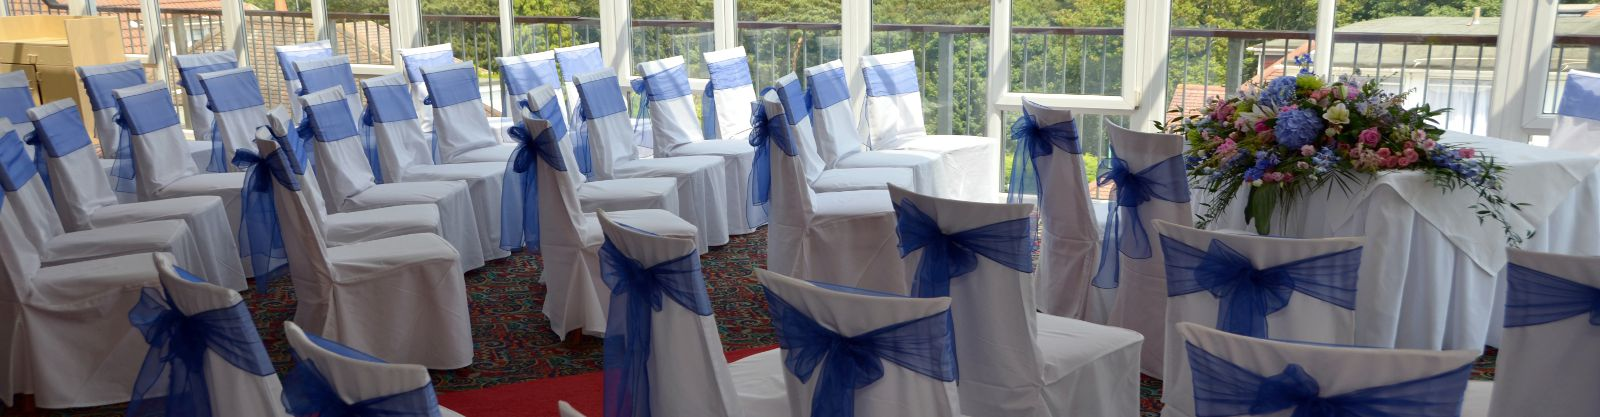 civil-ceremony-wedding-riviera-hotel-bournemouth